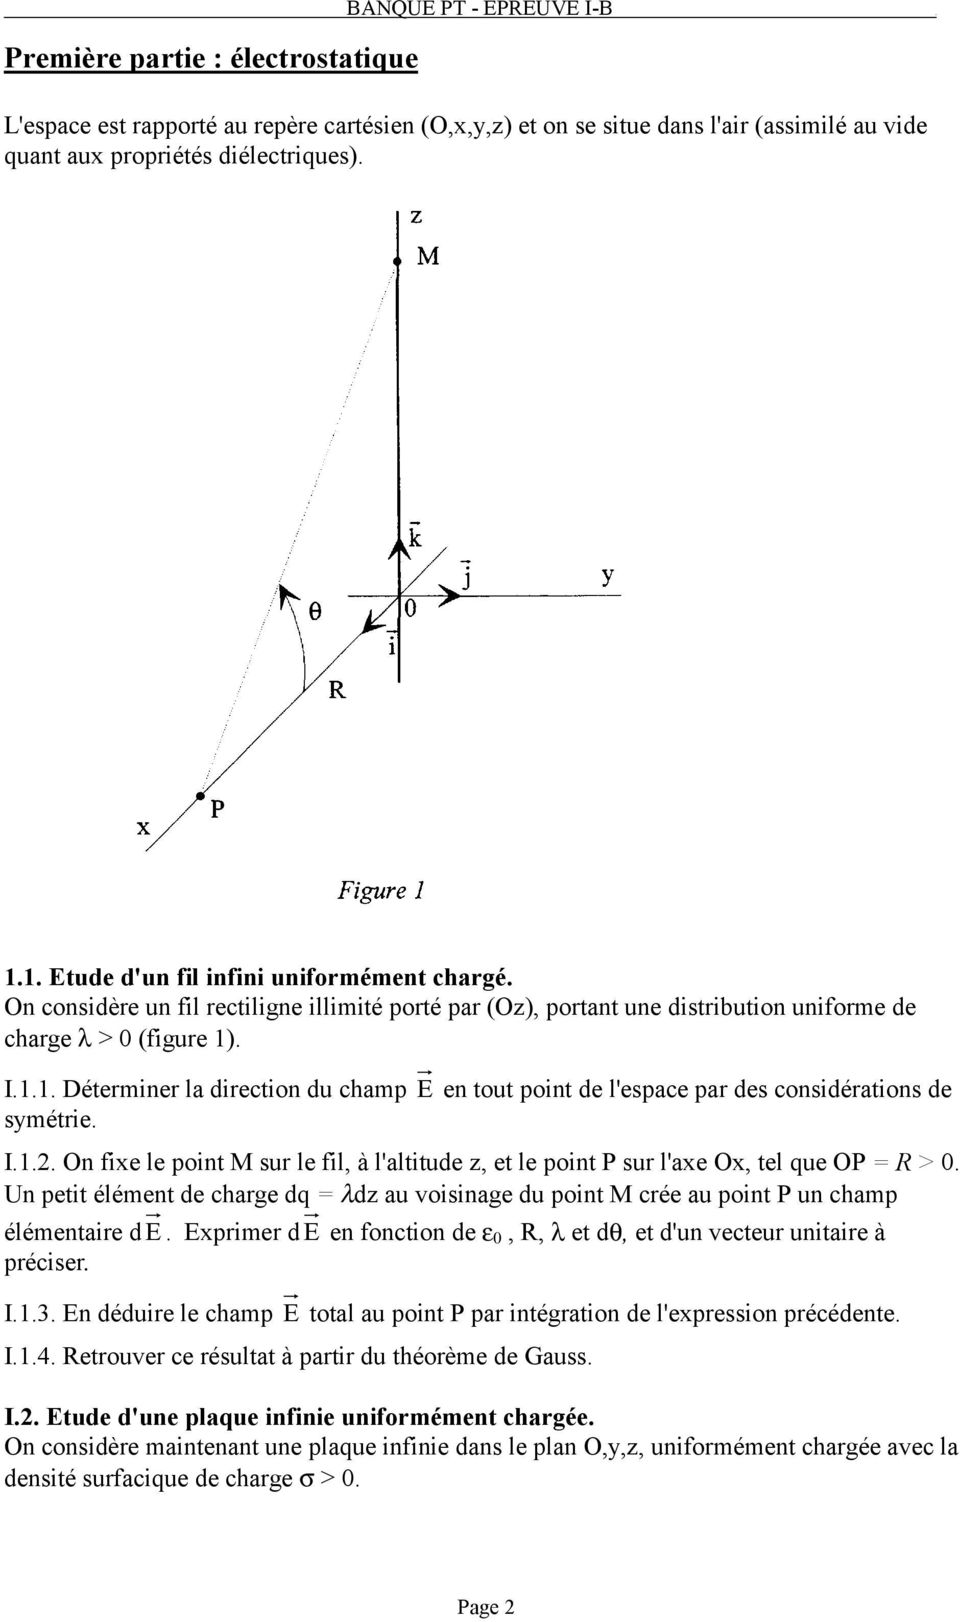 I.1.2. On fixe le point M sur le fil, à l'altitude z, et le point P sur l'axe Ox, tel que OP = R >.